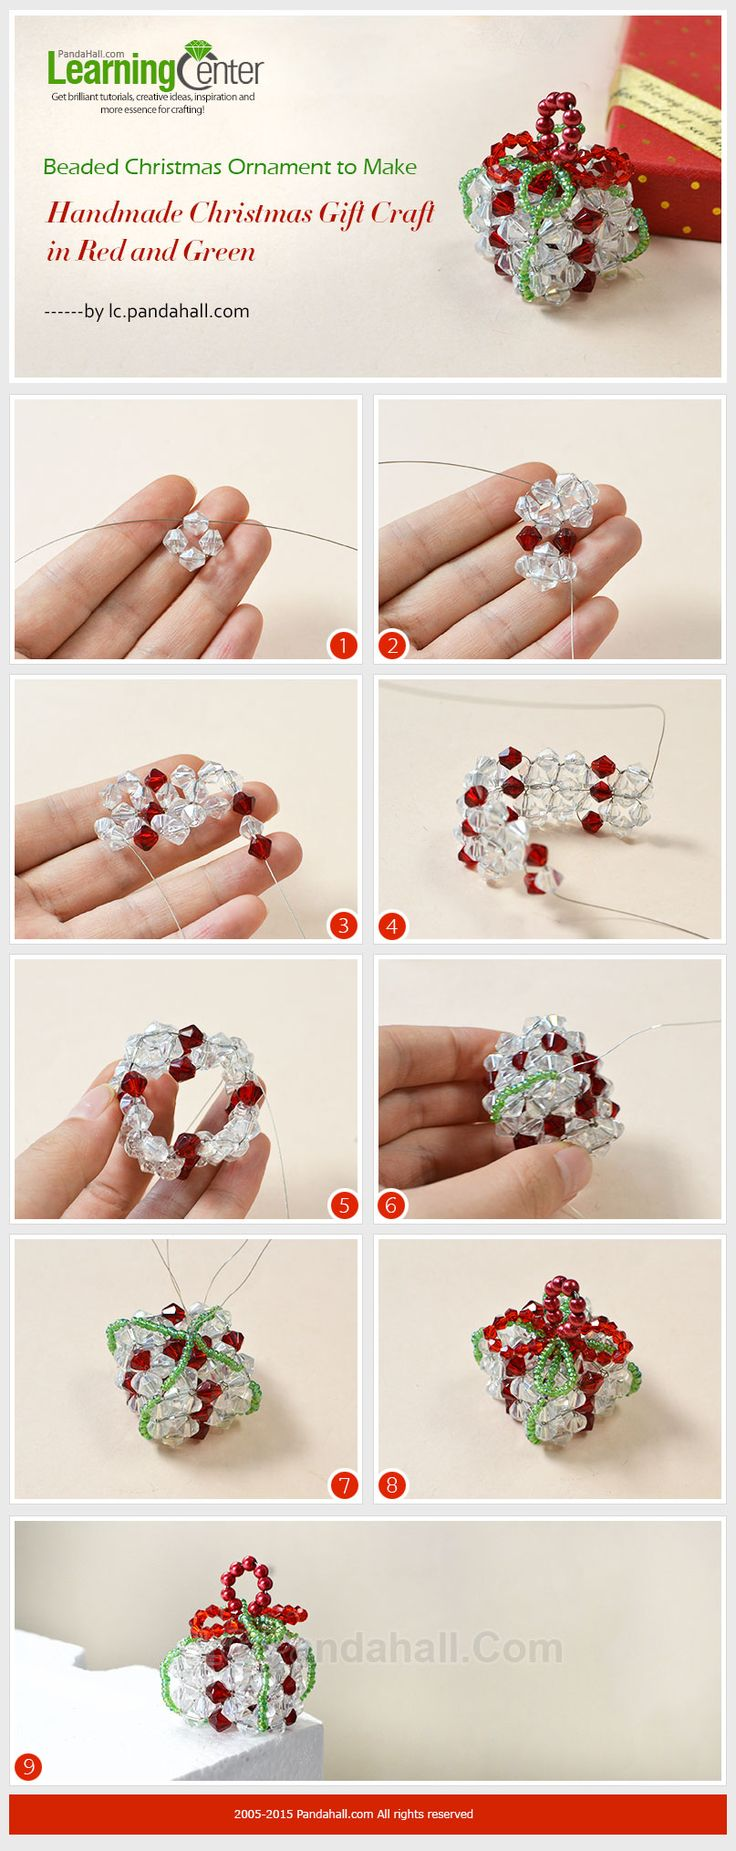 Beaded Christmas Ornament to Make – Handmade Christmas Gift Craft in Red and Green